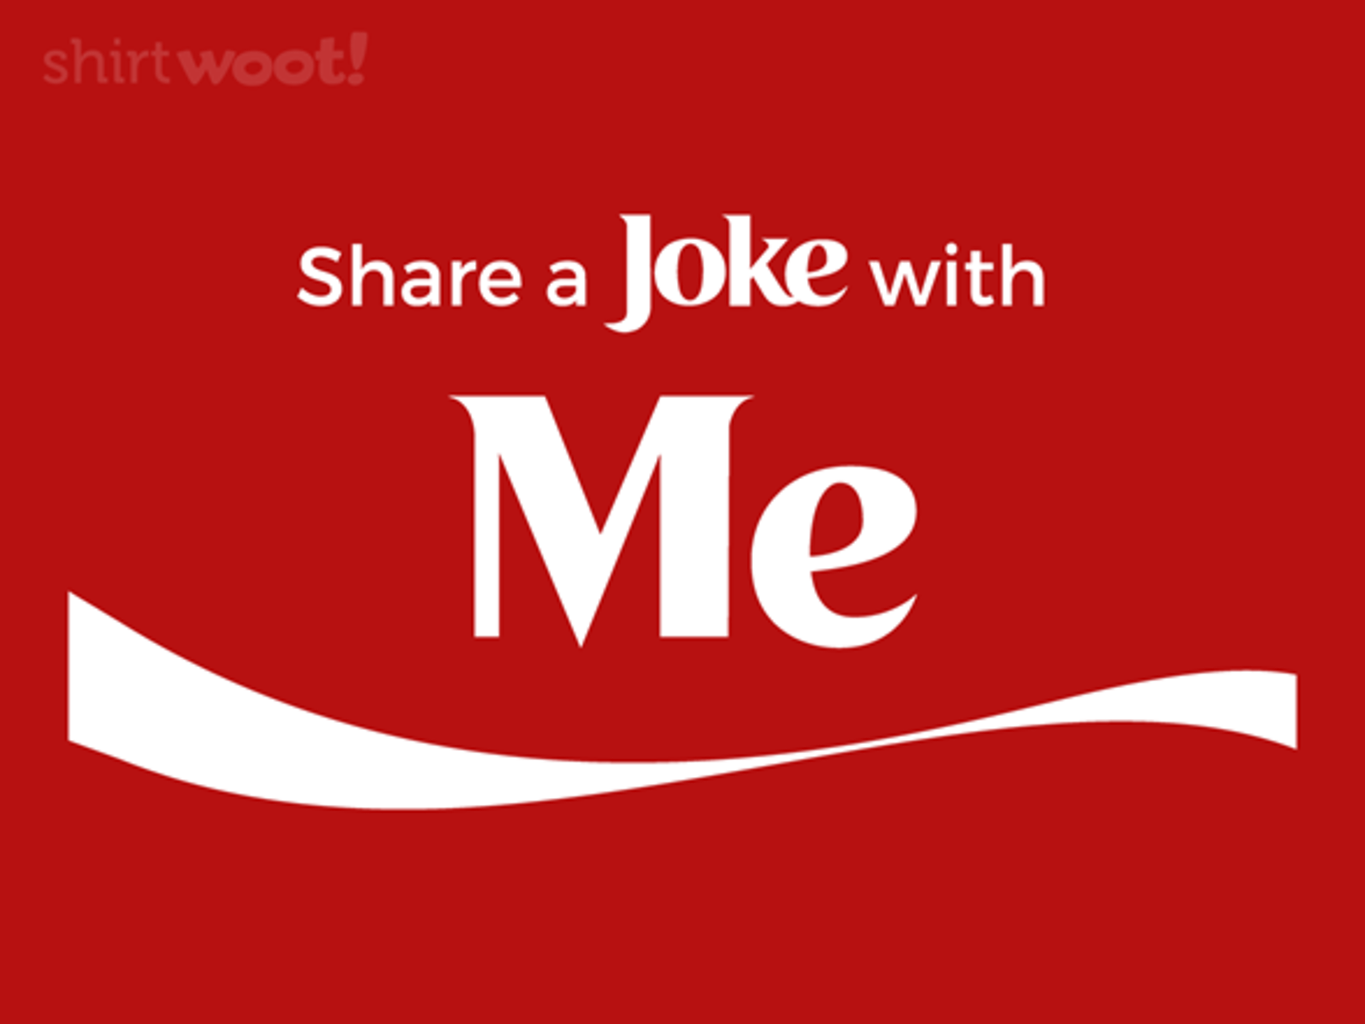 Woot!: Share a Joke